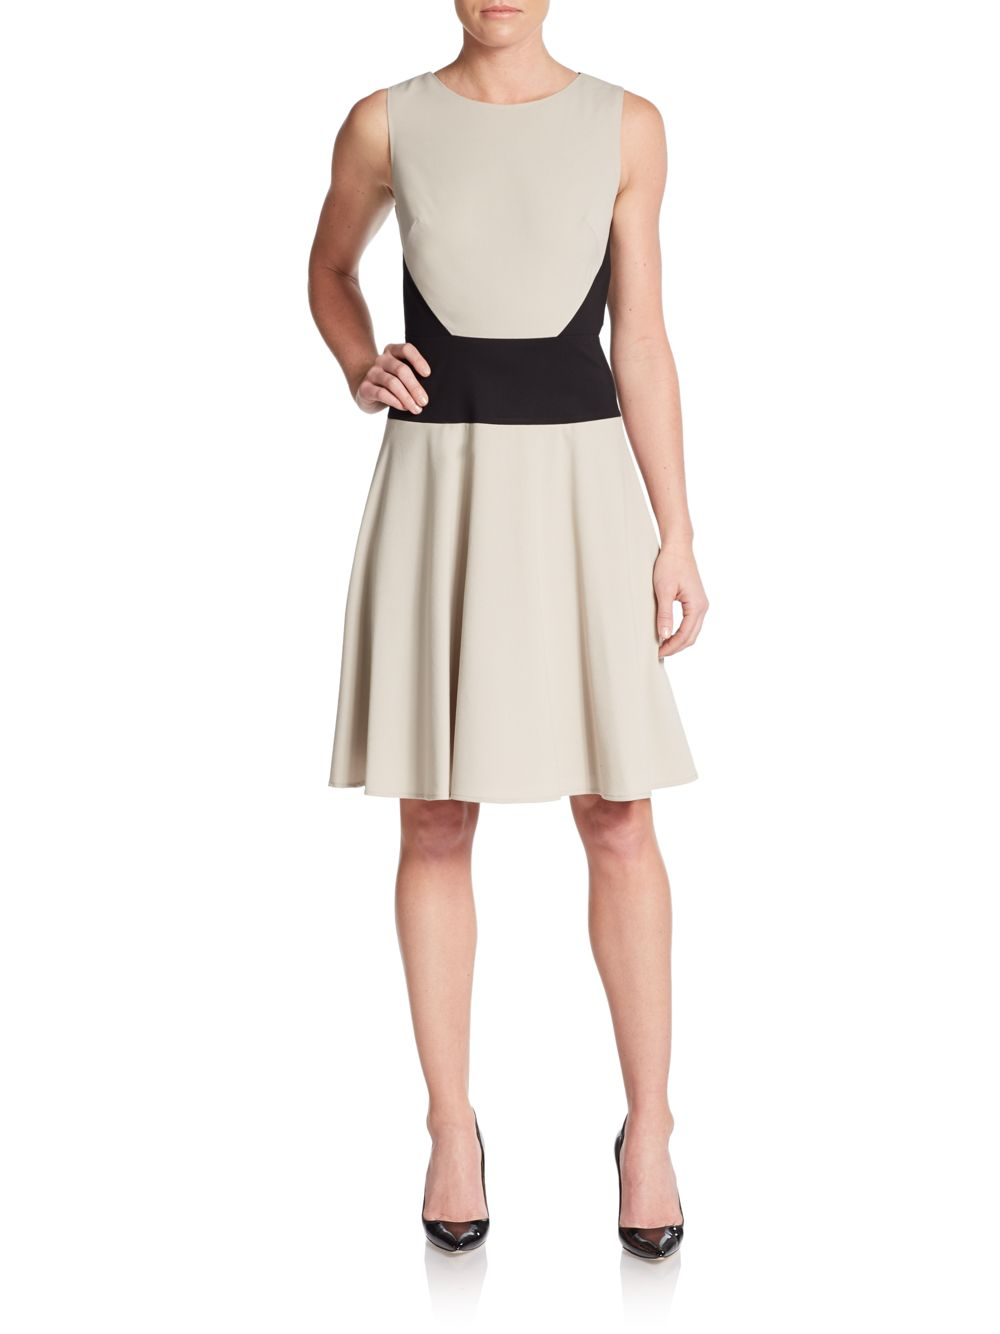 Calvin klein Paneled Fit-and-flare Dress in Natural | Lyst